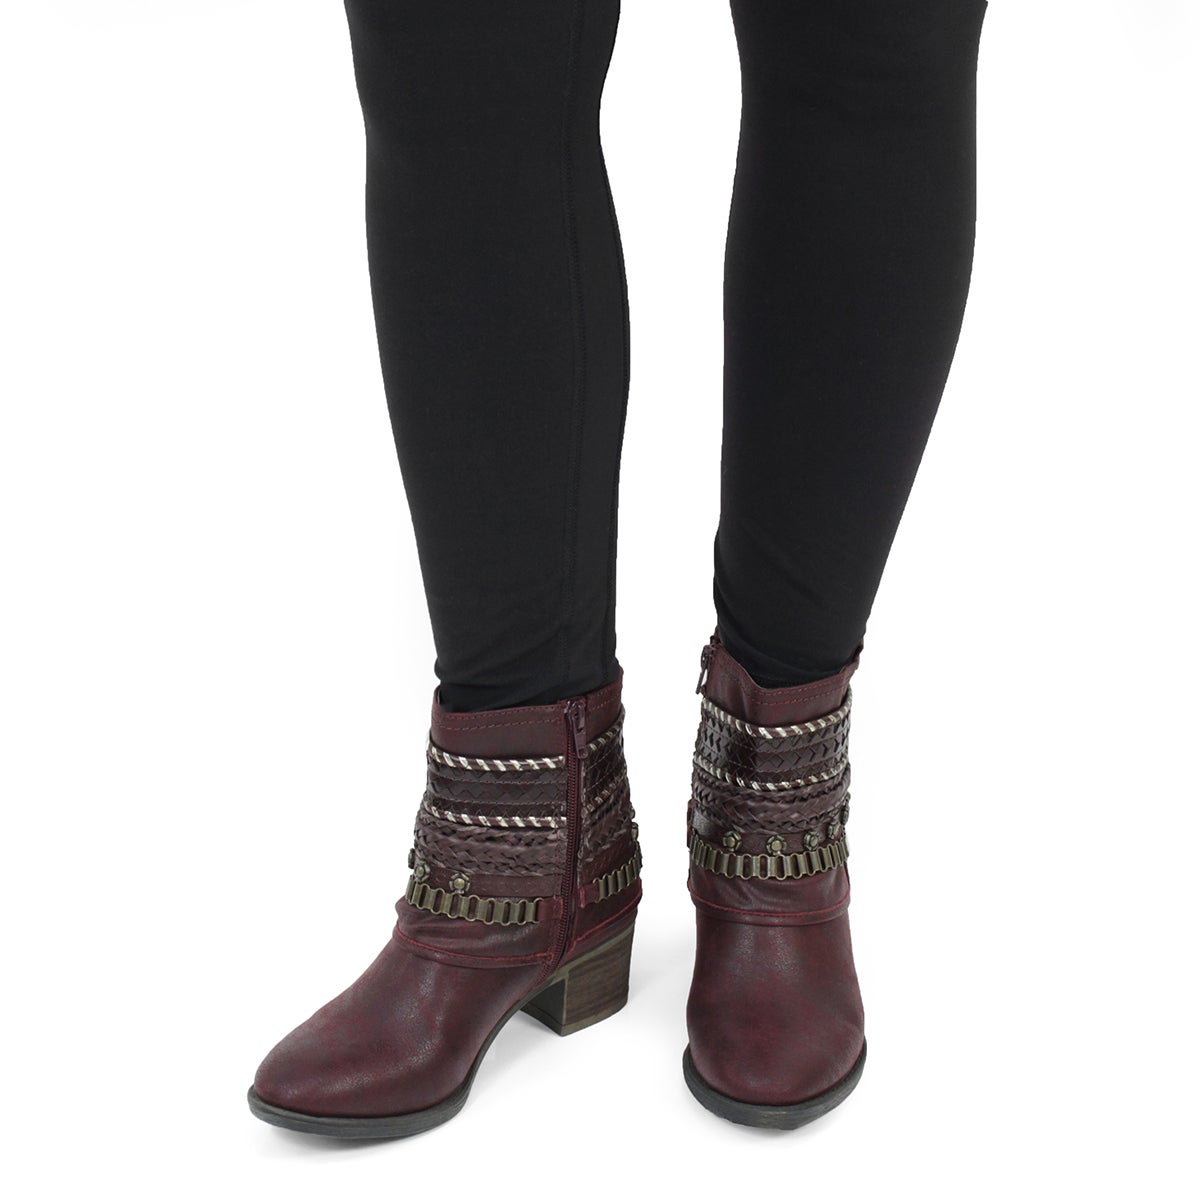 Lds Bizou III wine casual ankle boot